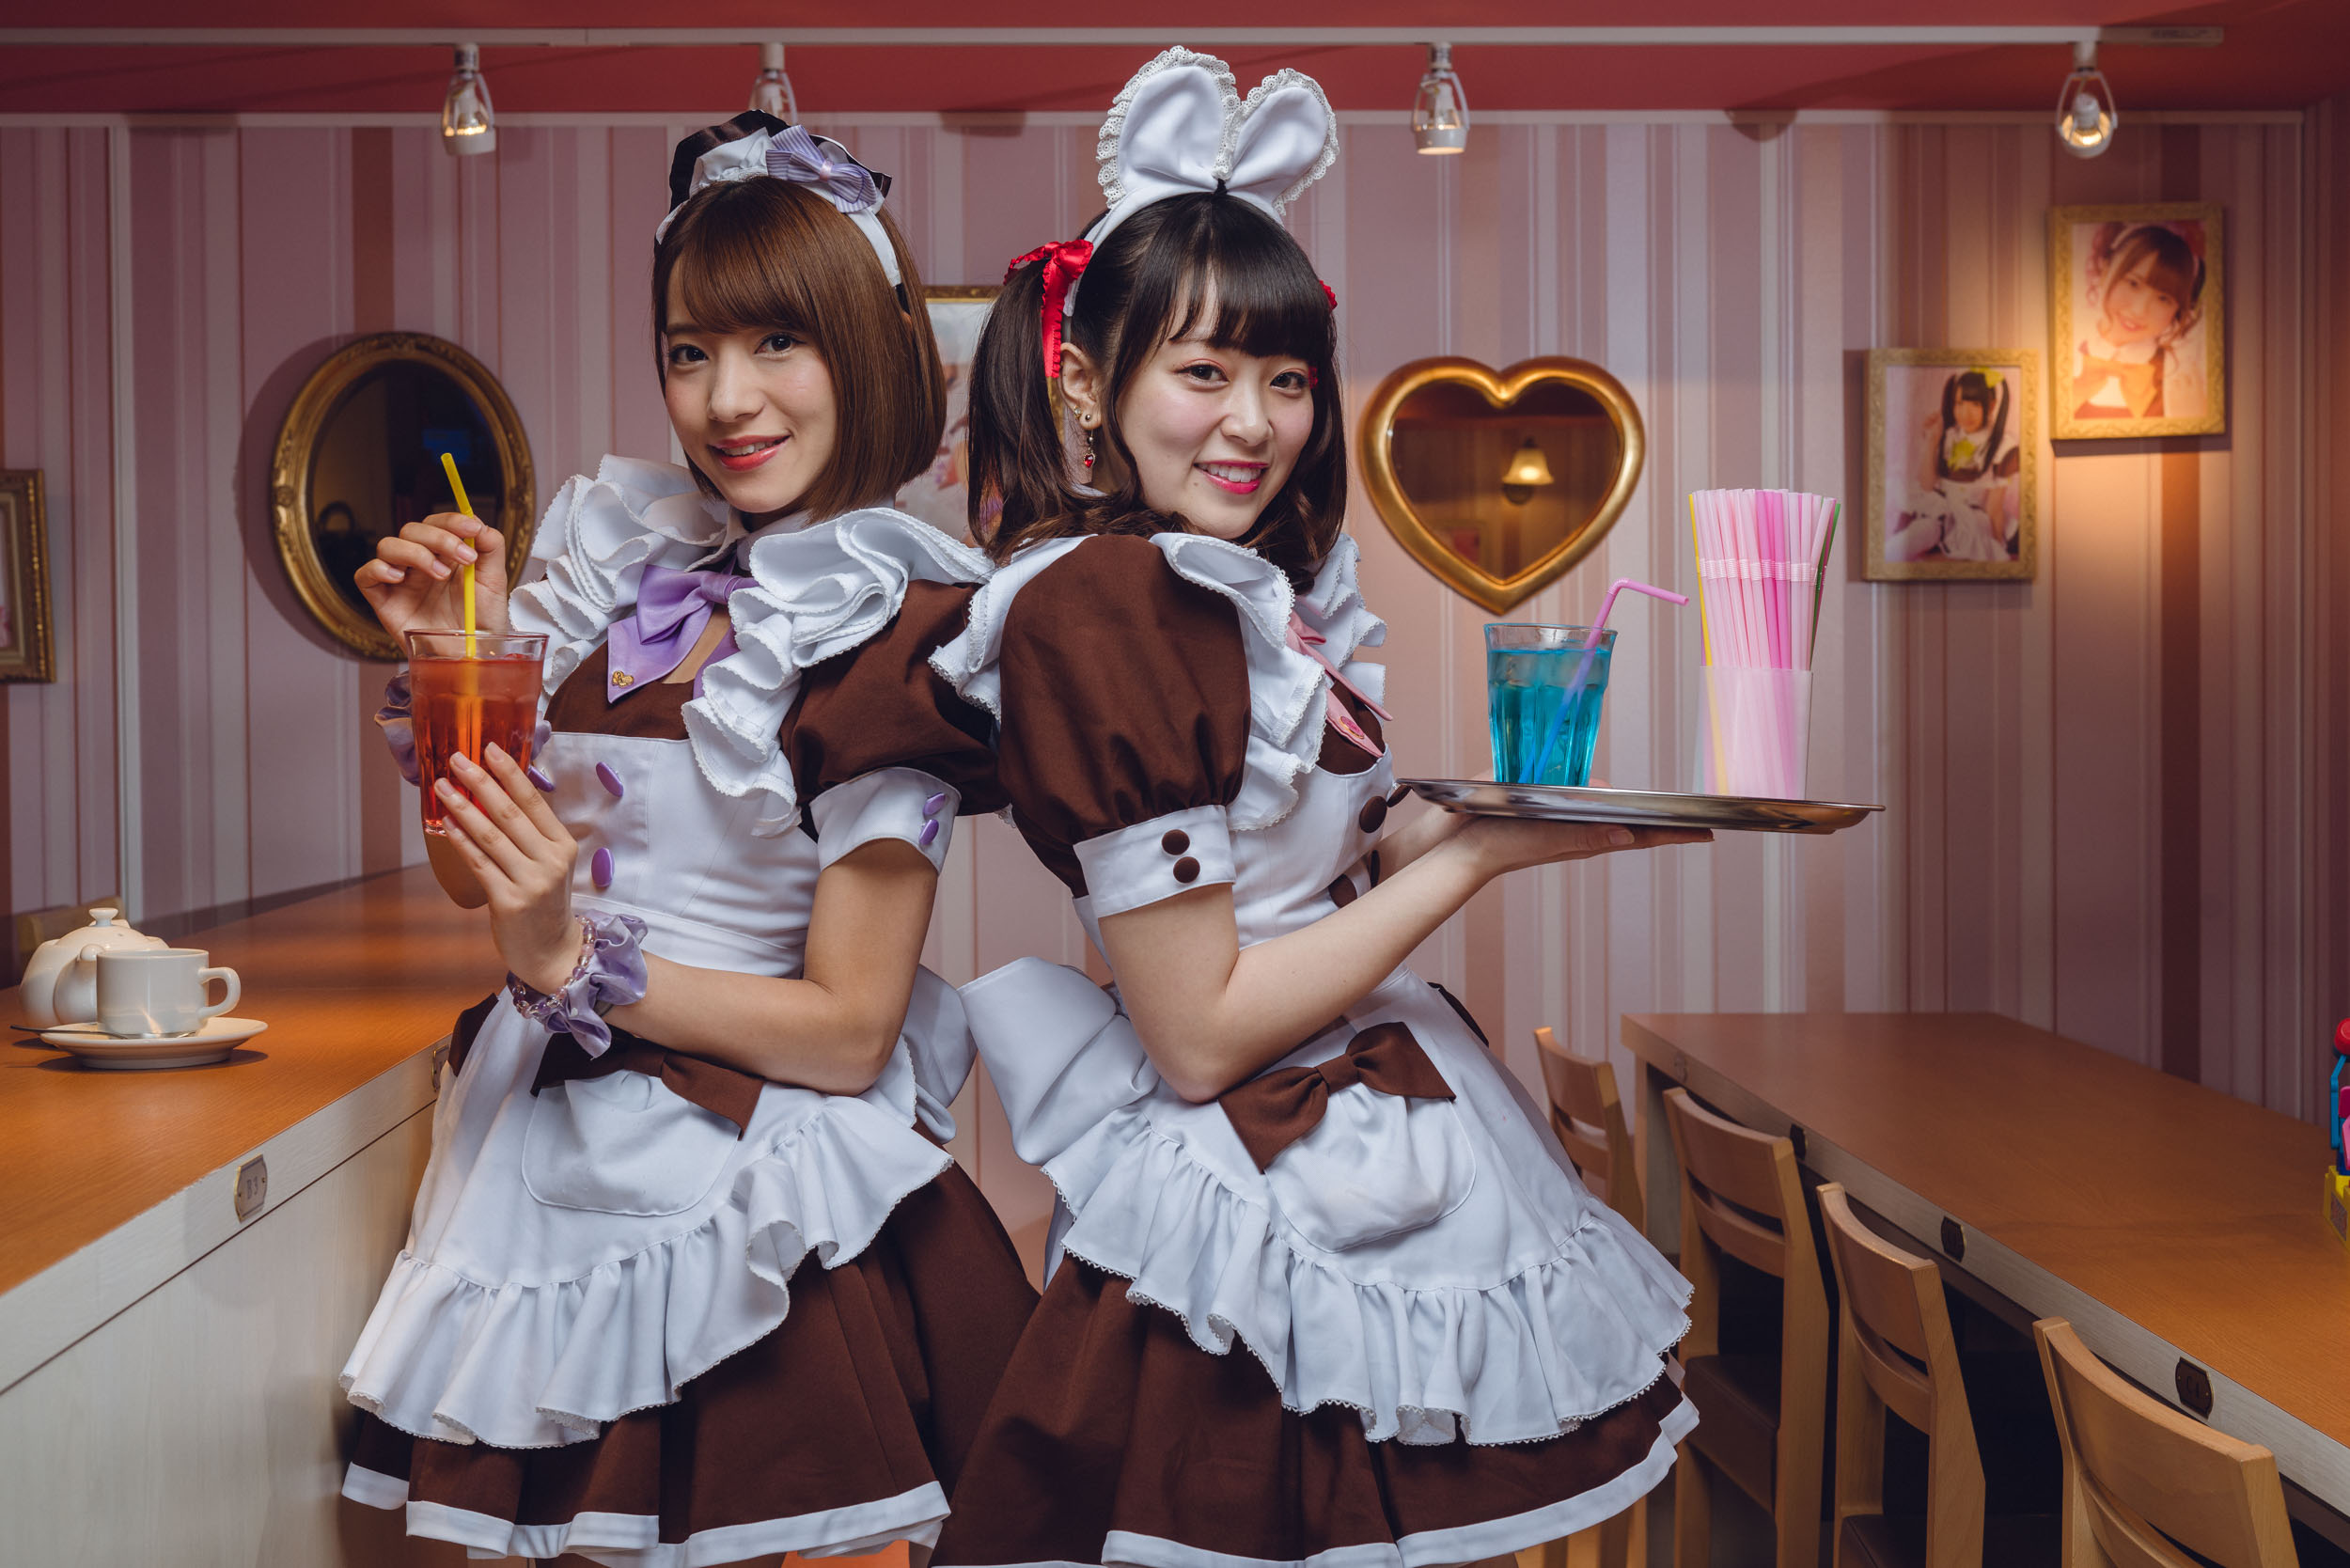 Tokyo Photographer Irwin Wong - Maid Cafe Culture